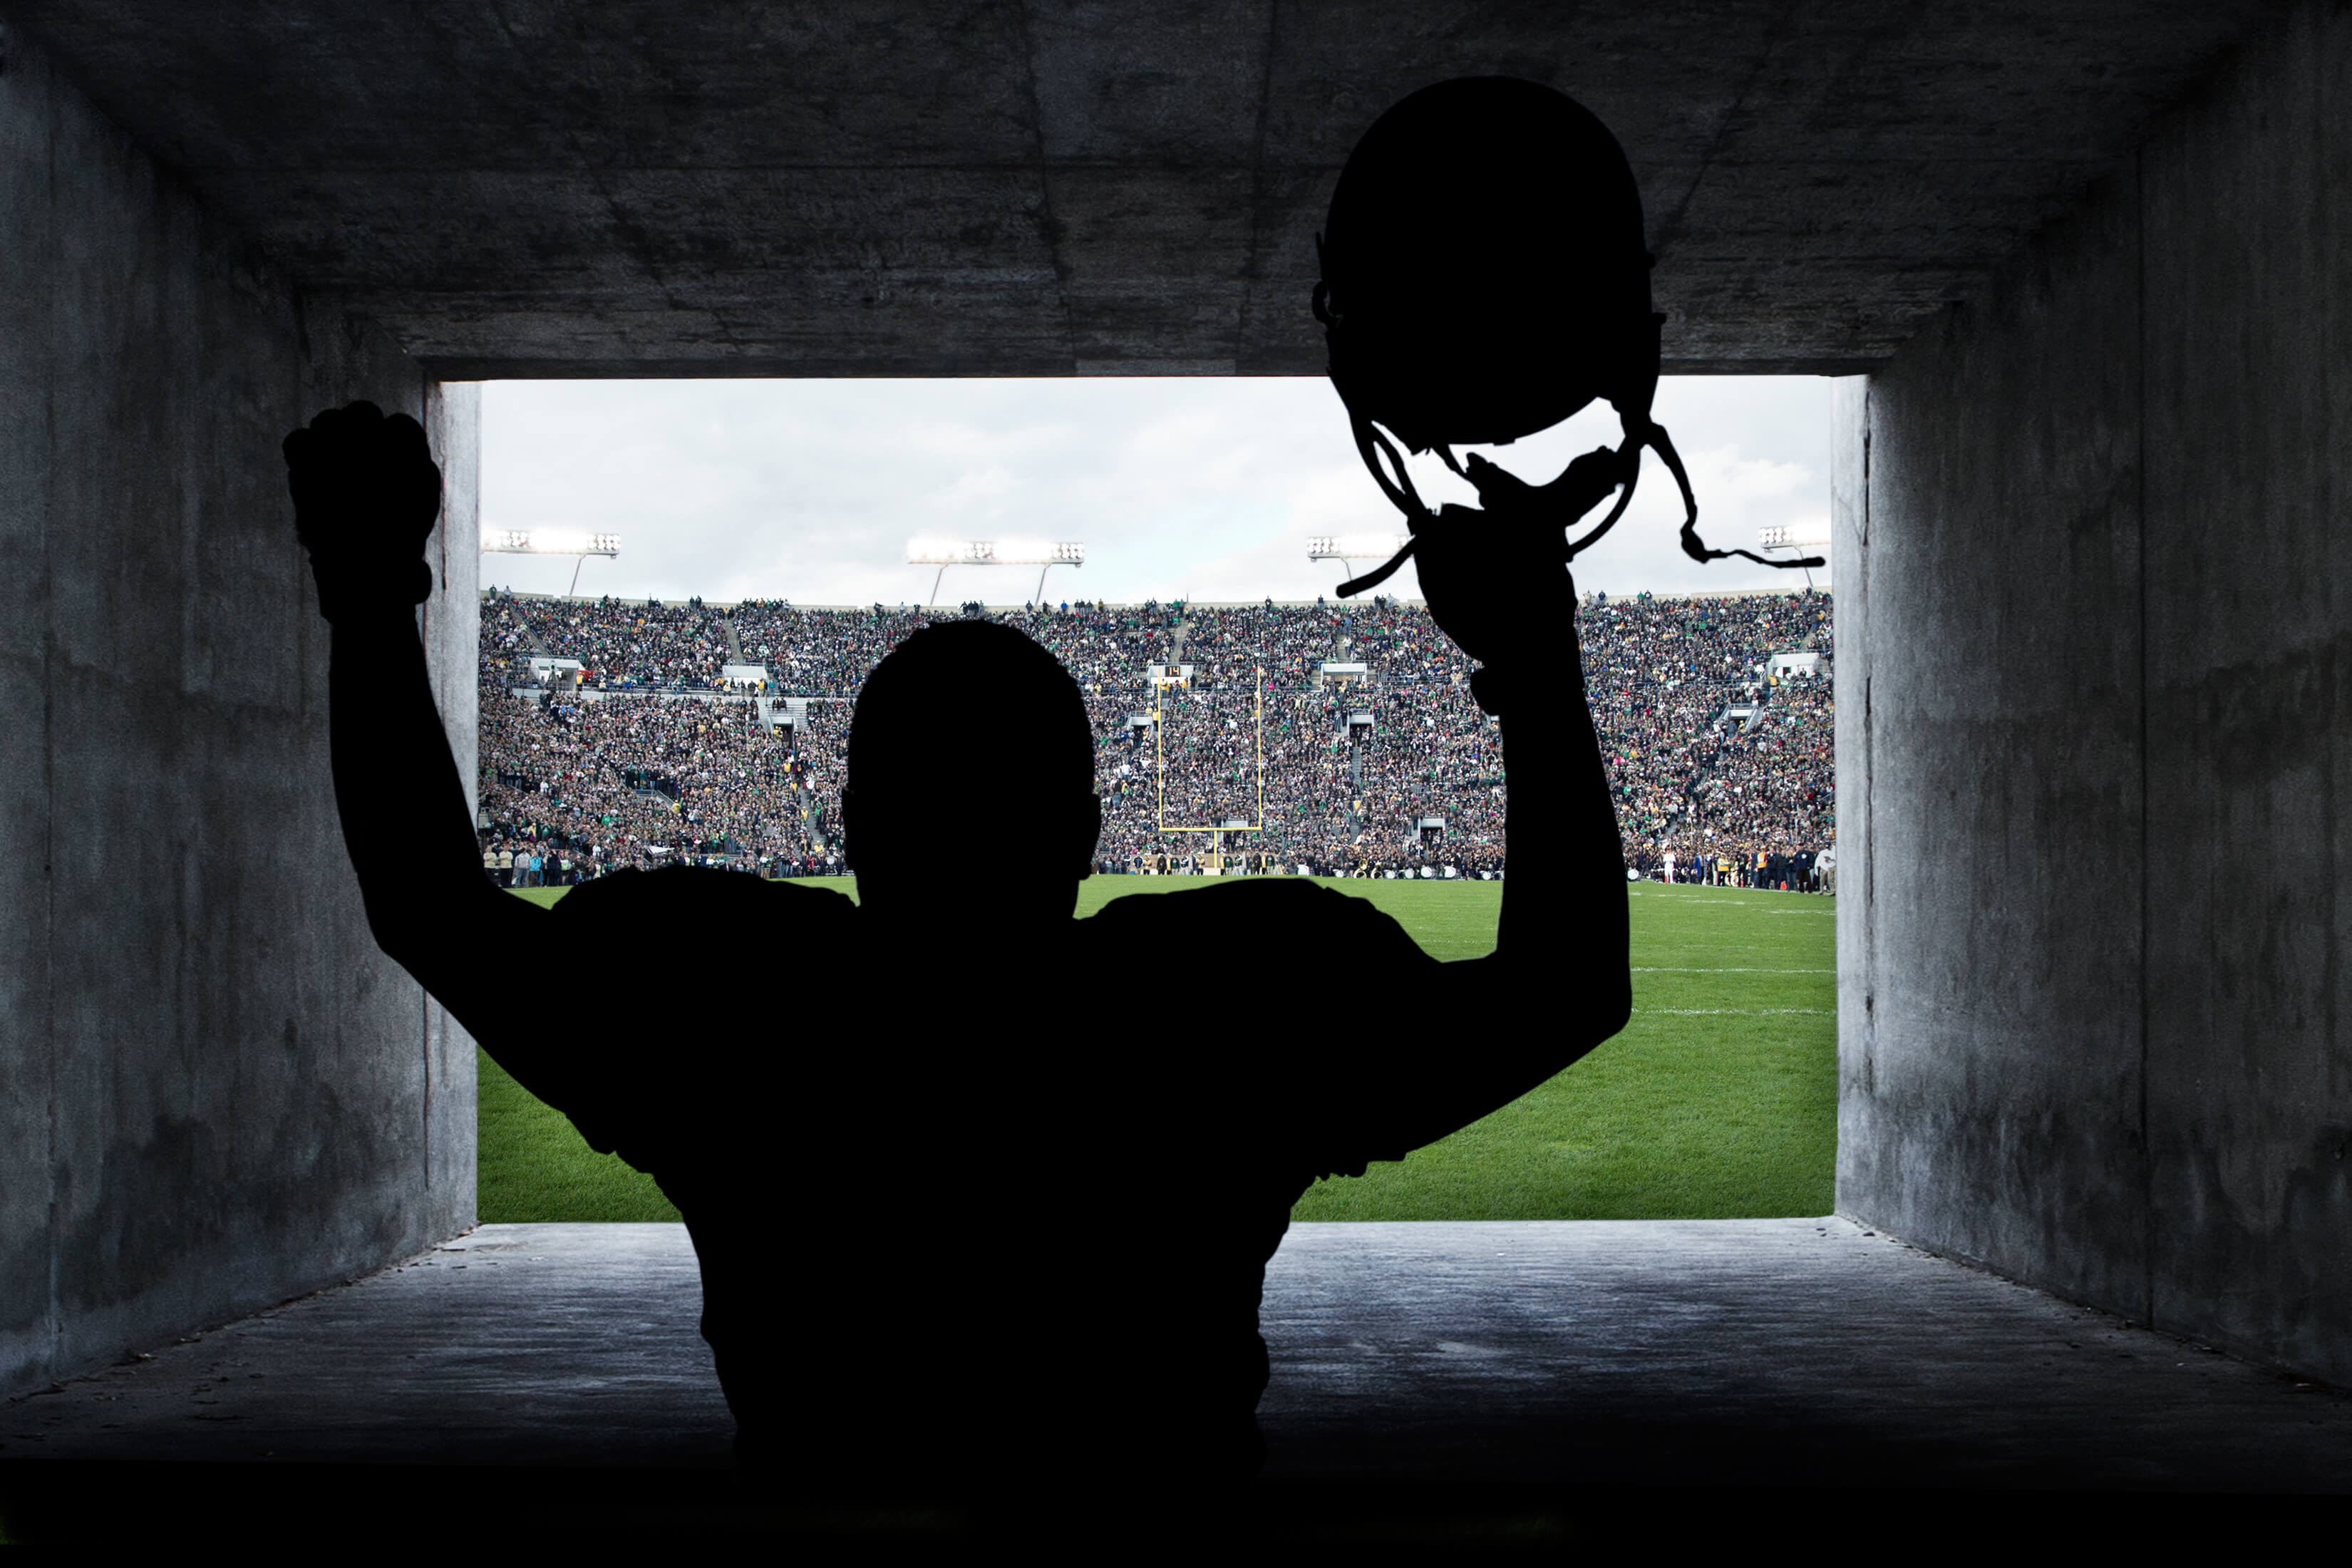 Football player entering the field.